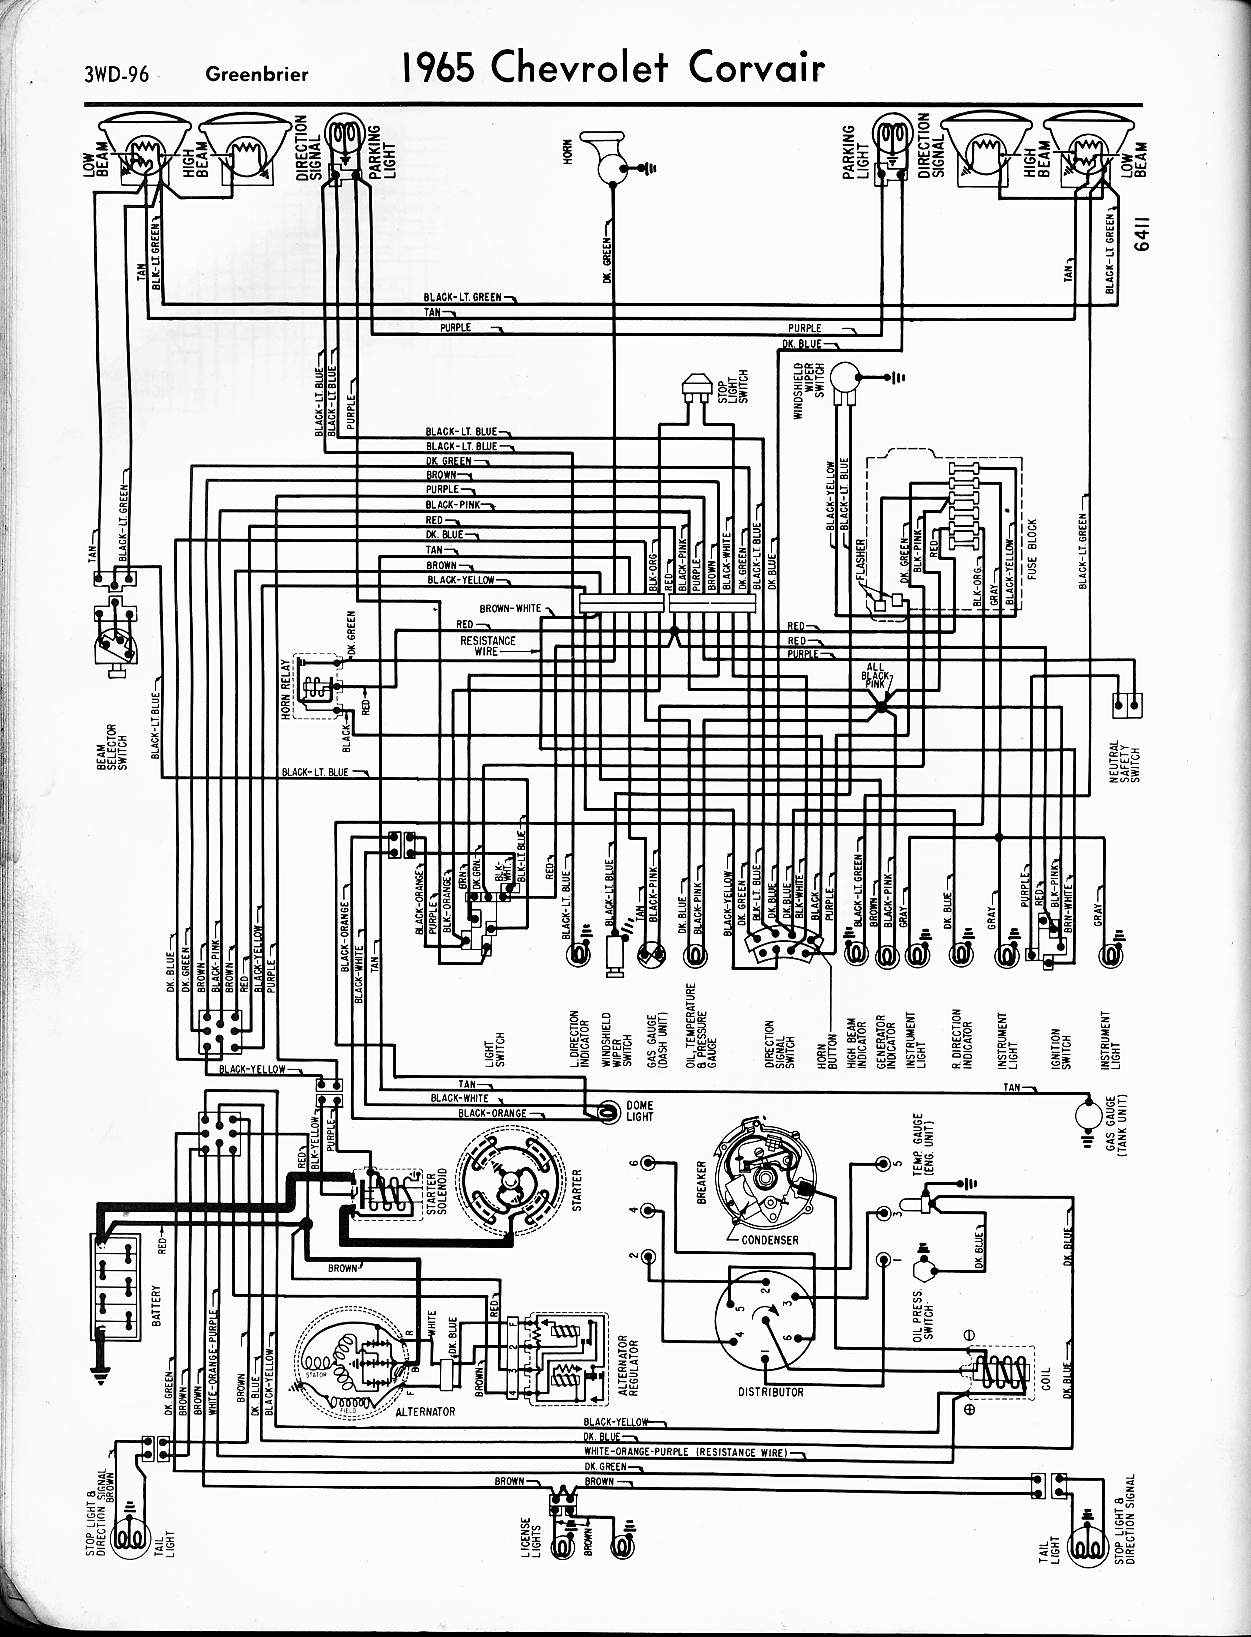 Chevy Impala Headlight Switch Wiring Diagram, Chevy, Get